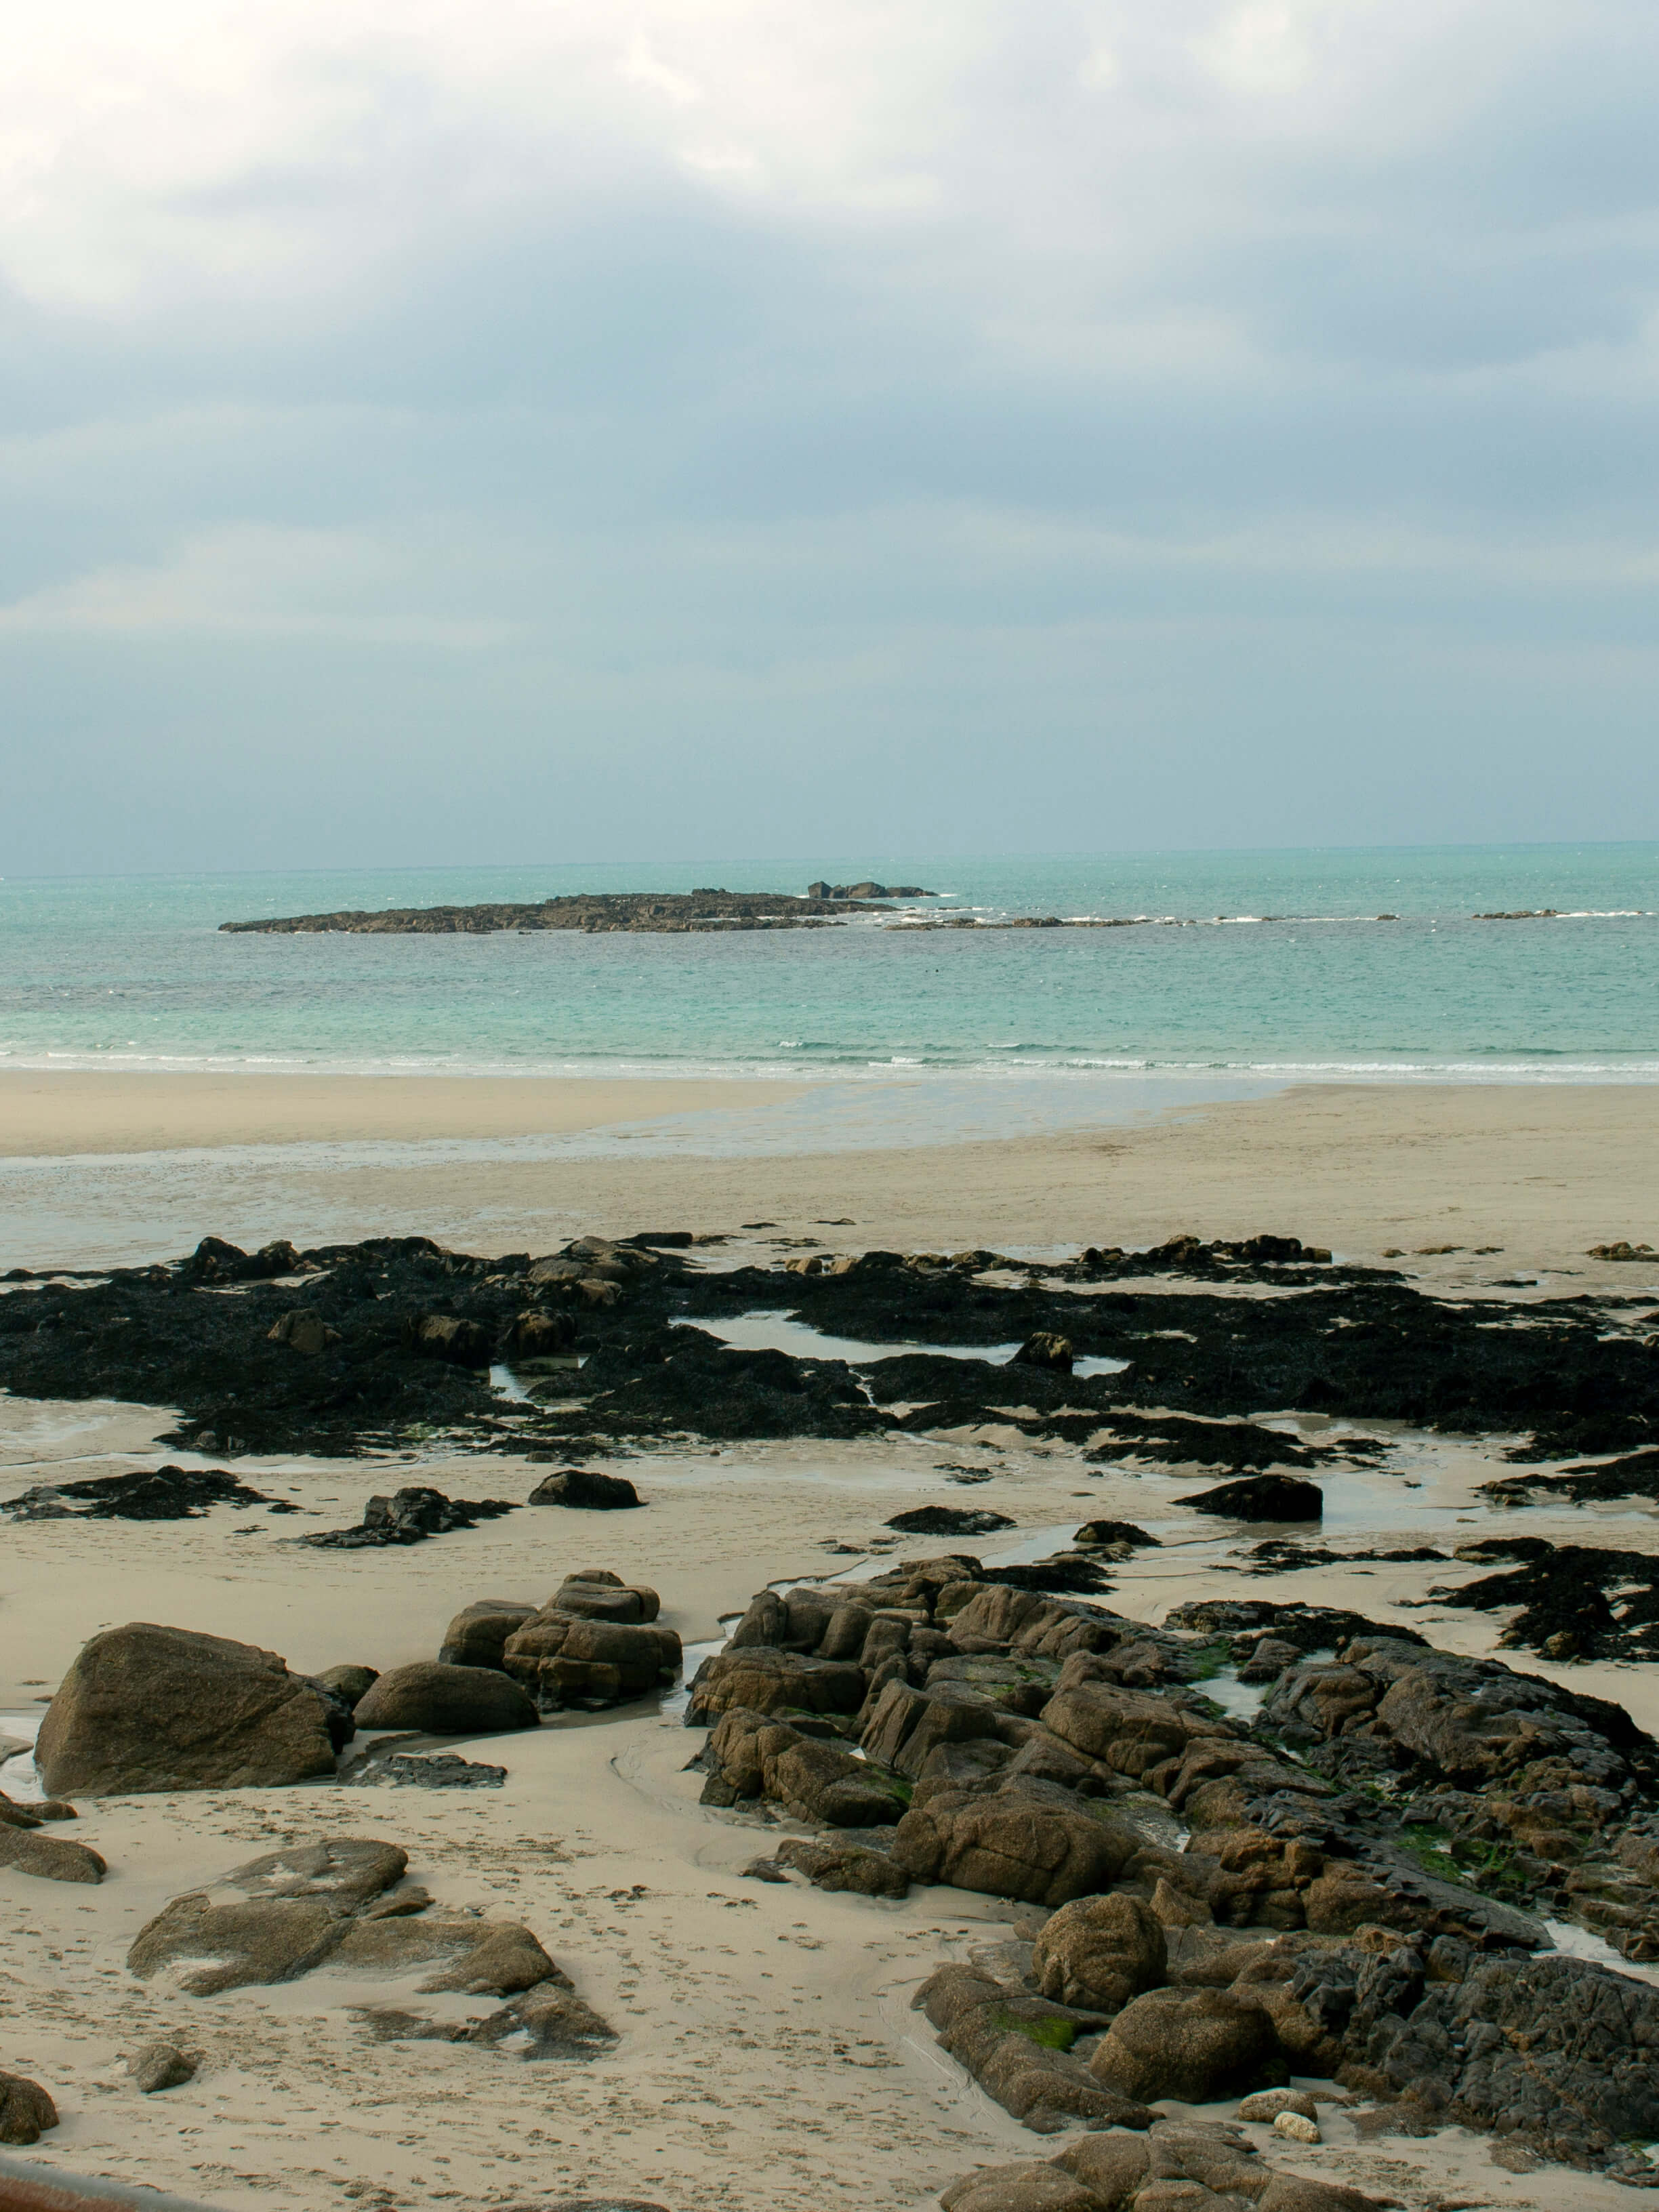 a beach at one of the most south-westerly points in the UK. Rocks in front on the beach with the ocean in the background